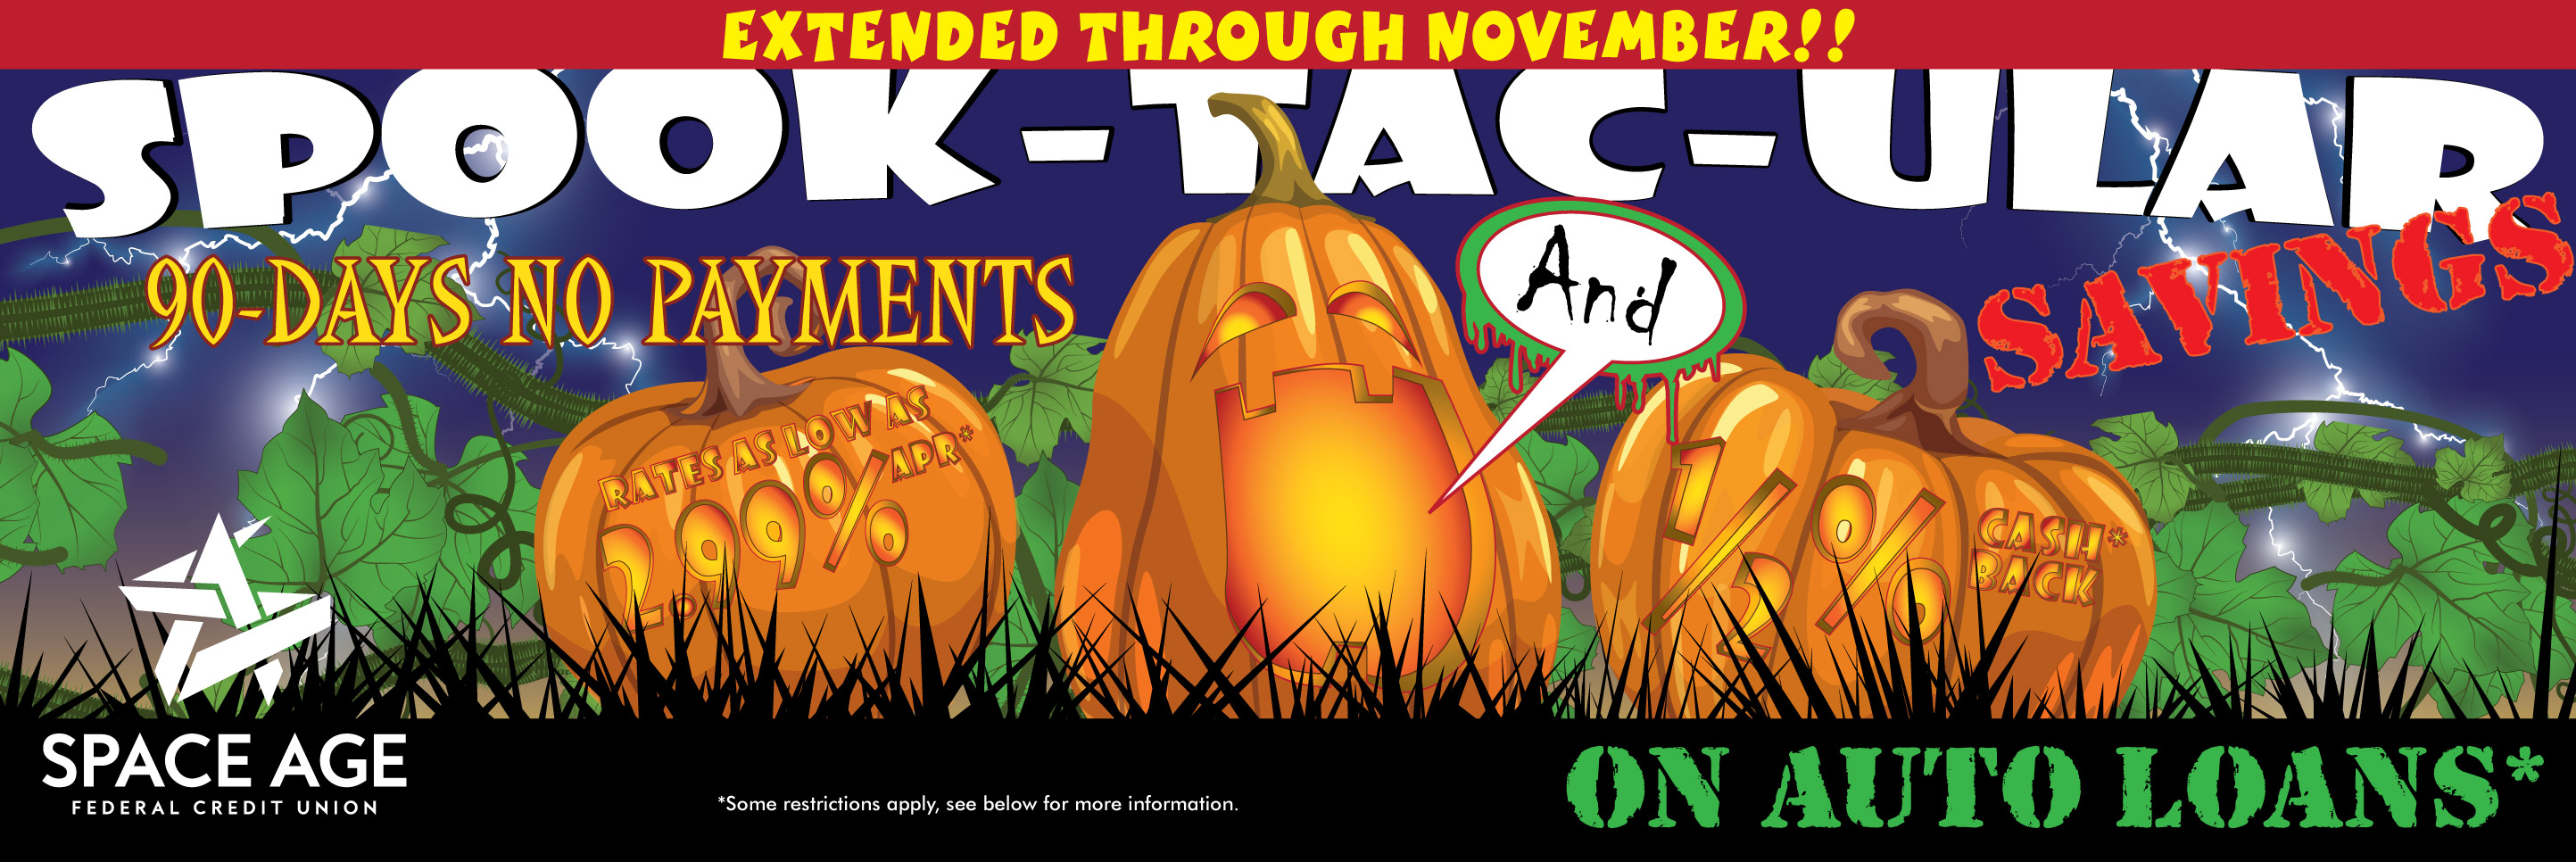 October Events at Space Age - Halloween and Credit Union Day